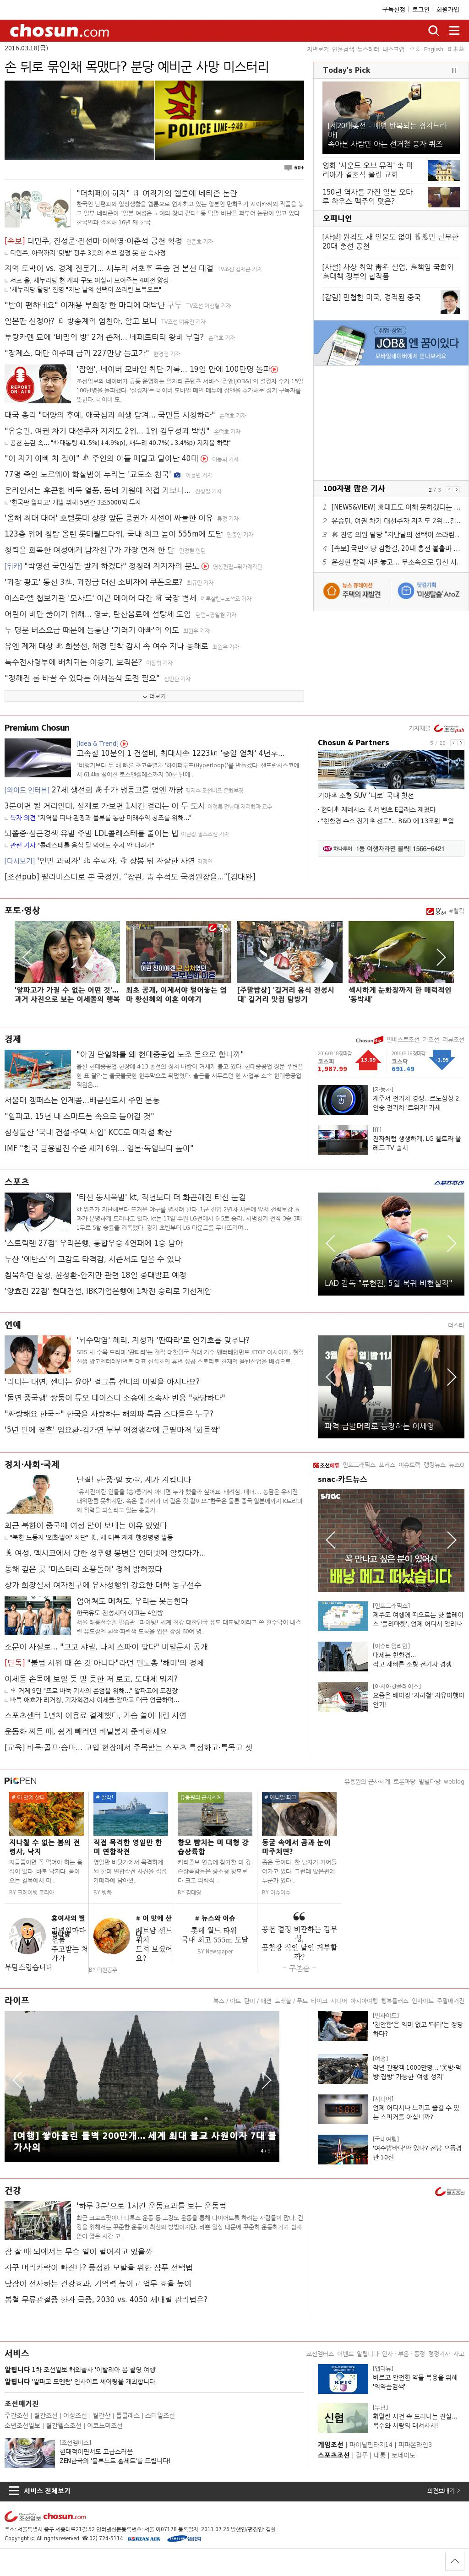 chosun.com at Thursday March 17, 2016, 3:22 p.m. UTC